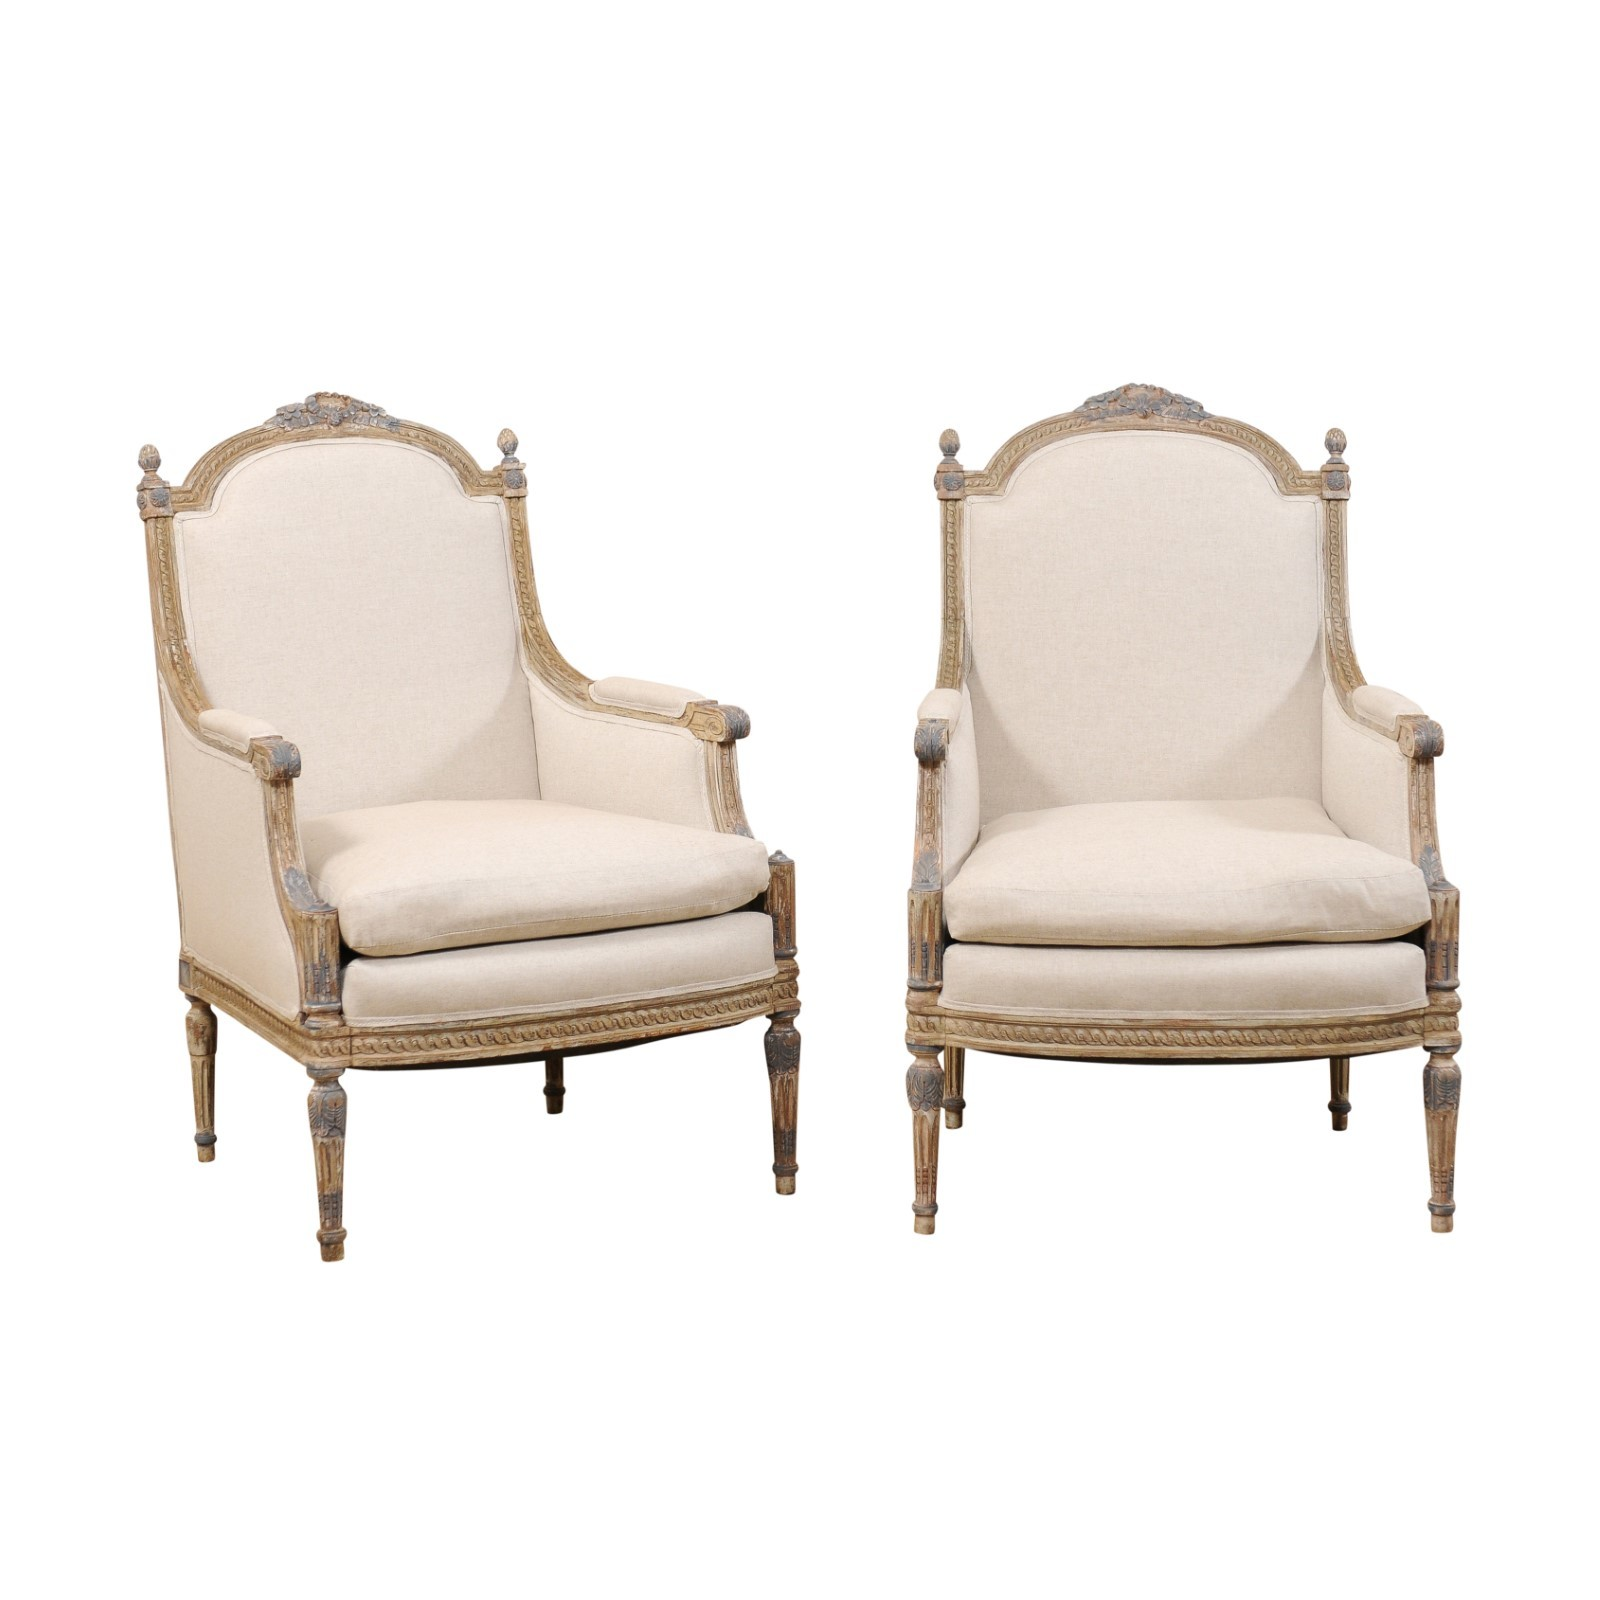 Pair of French Bergère Chairs, 19th Century